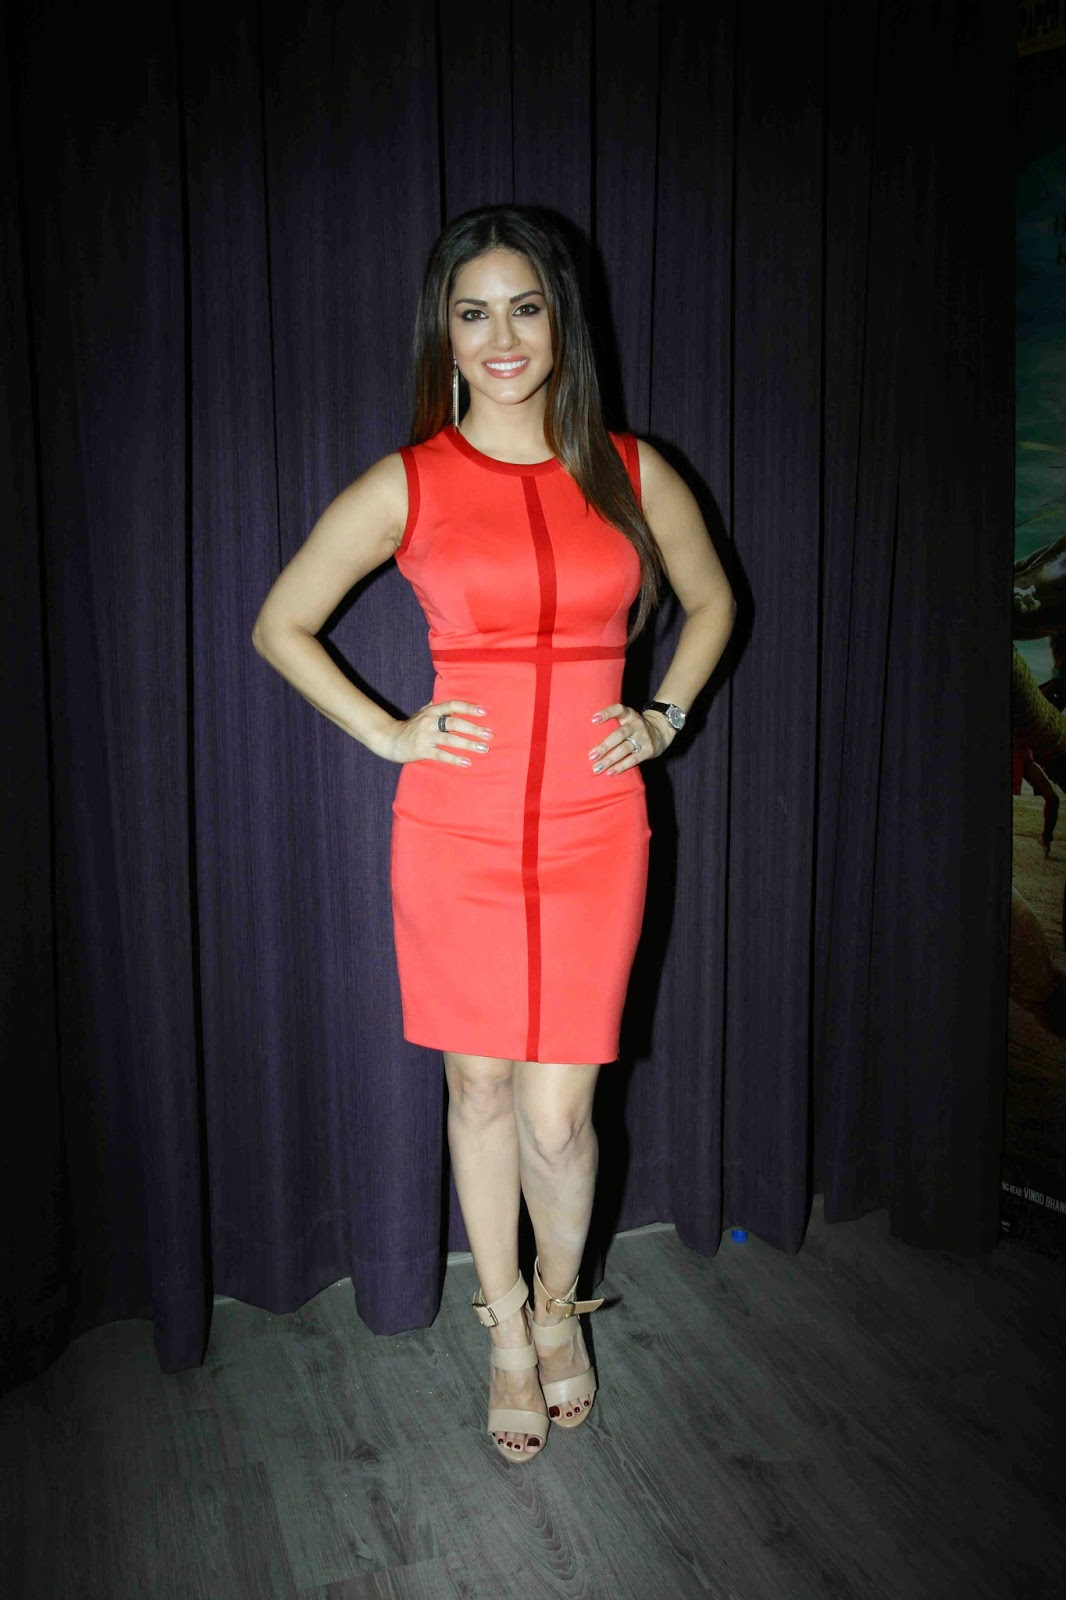 High Quality Bollywood Celebrity Pictures Sunny Leone -3830